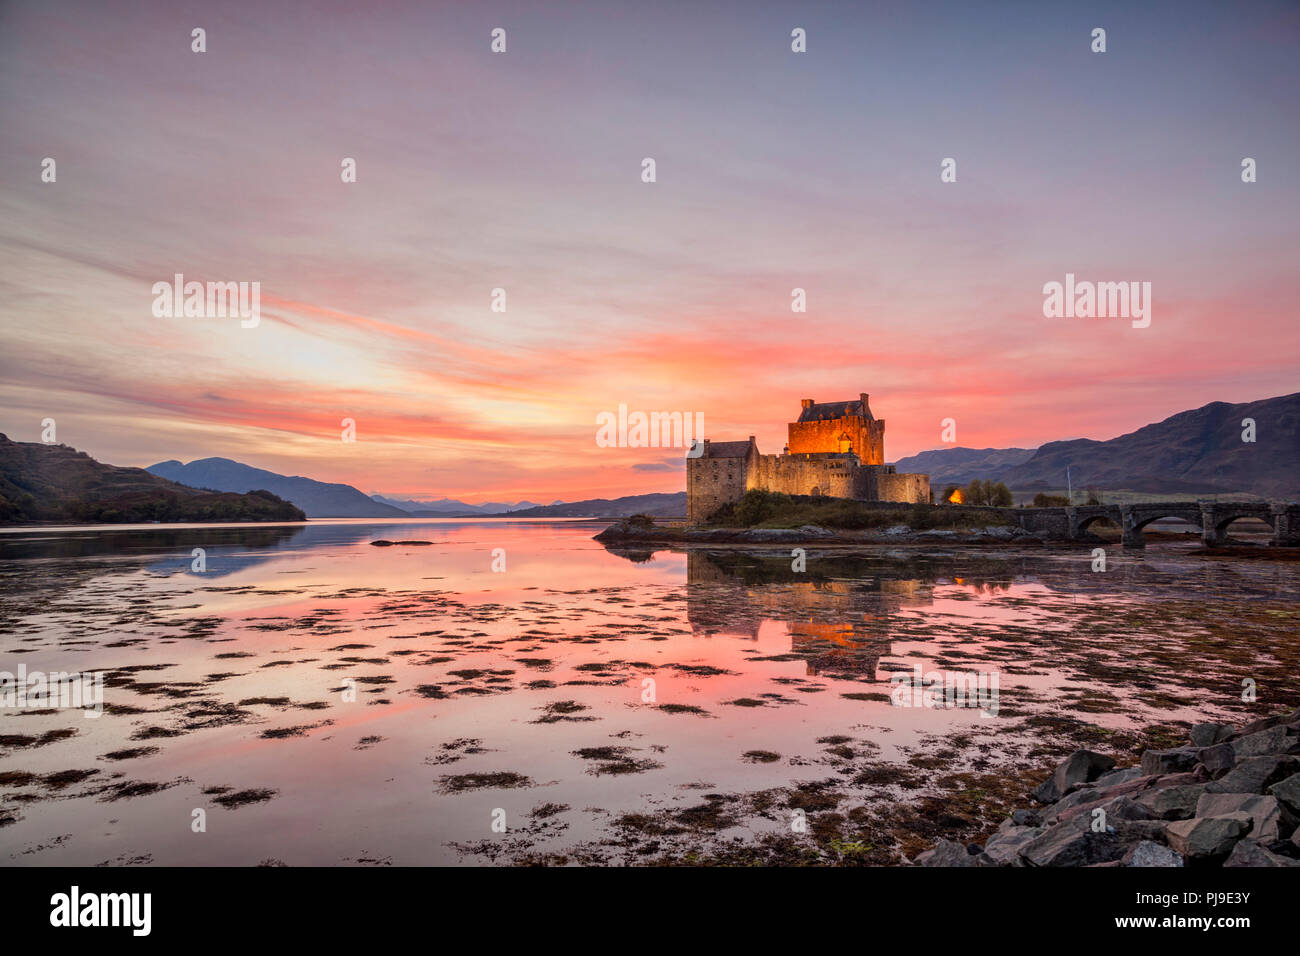 Eilean Donan Castle illuminated at twilight, Highland, Scotland, UK Stock Photo